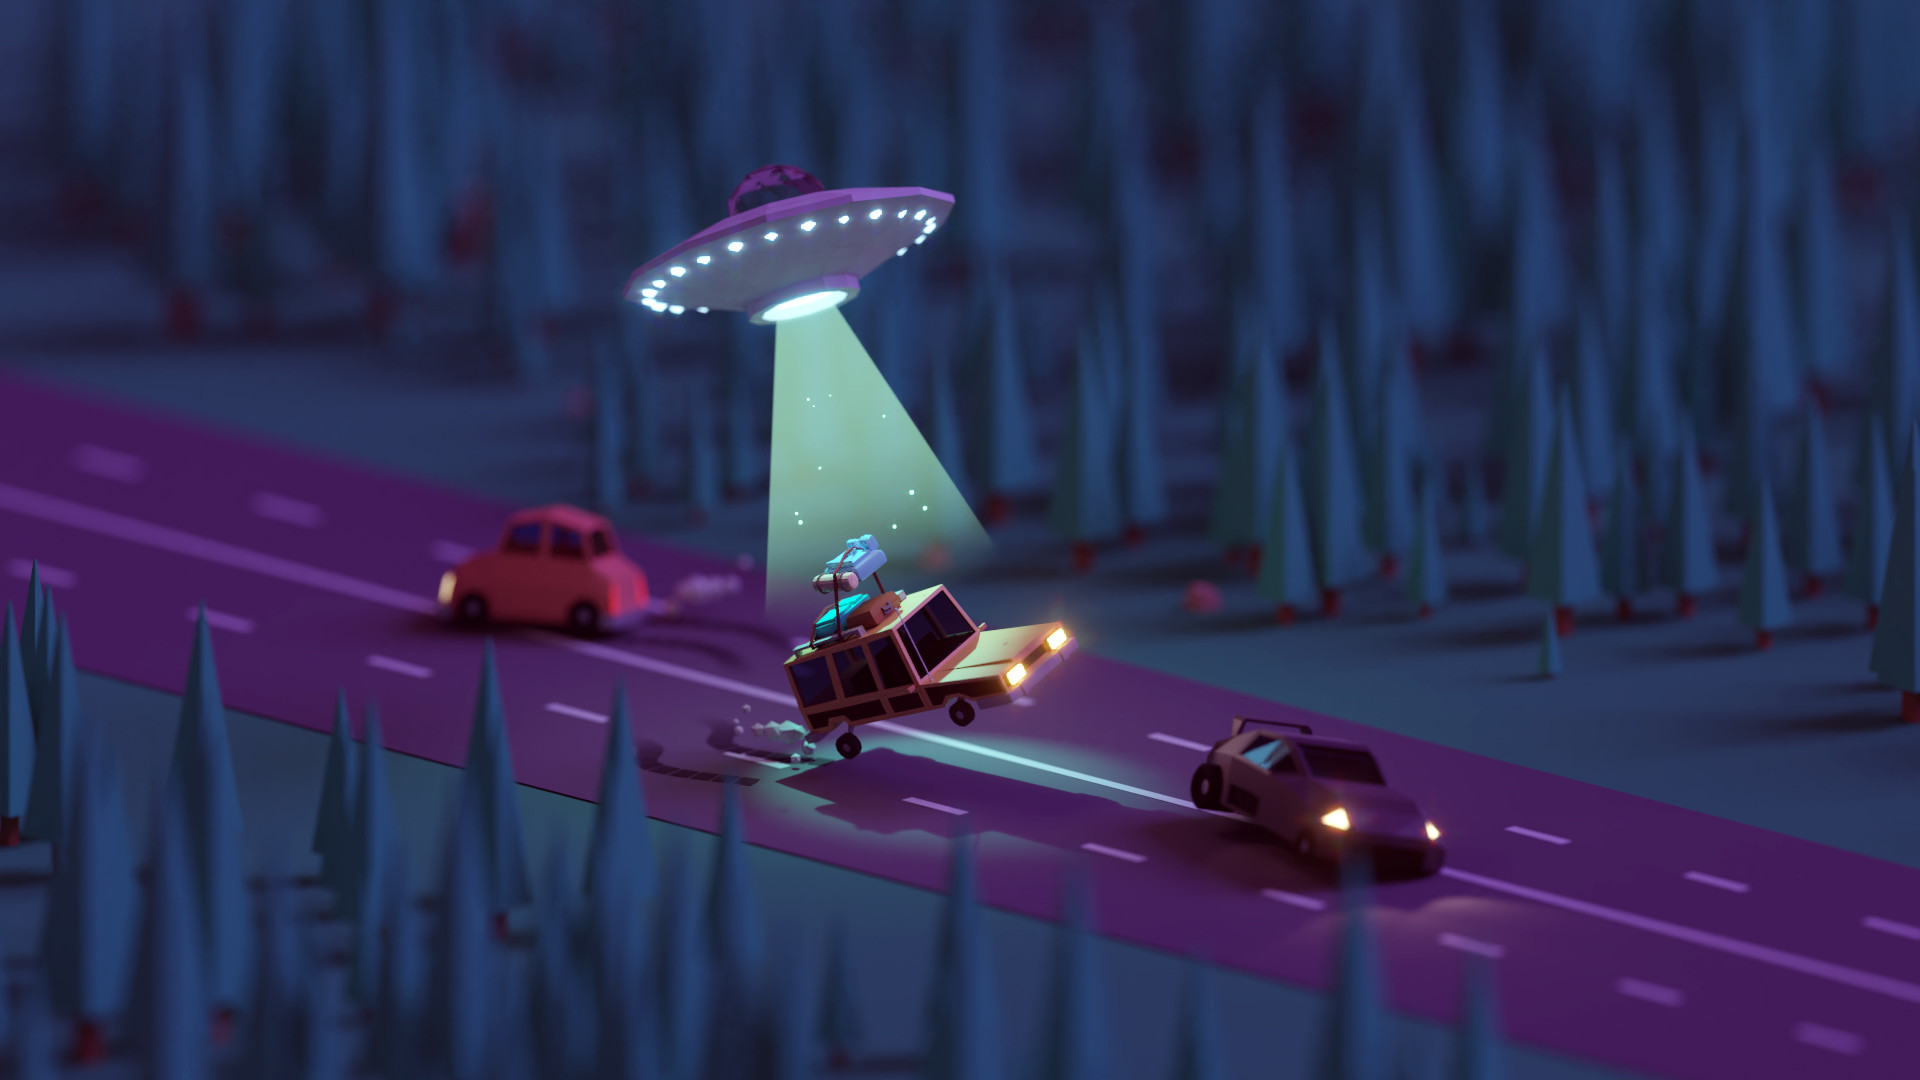 Mohamed Chahin Render Geometry Nature Forest Trees Street Car Aliens Night Macro Alien Abduction Fly 1920x1080